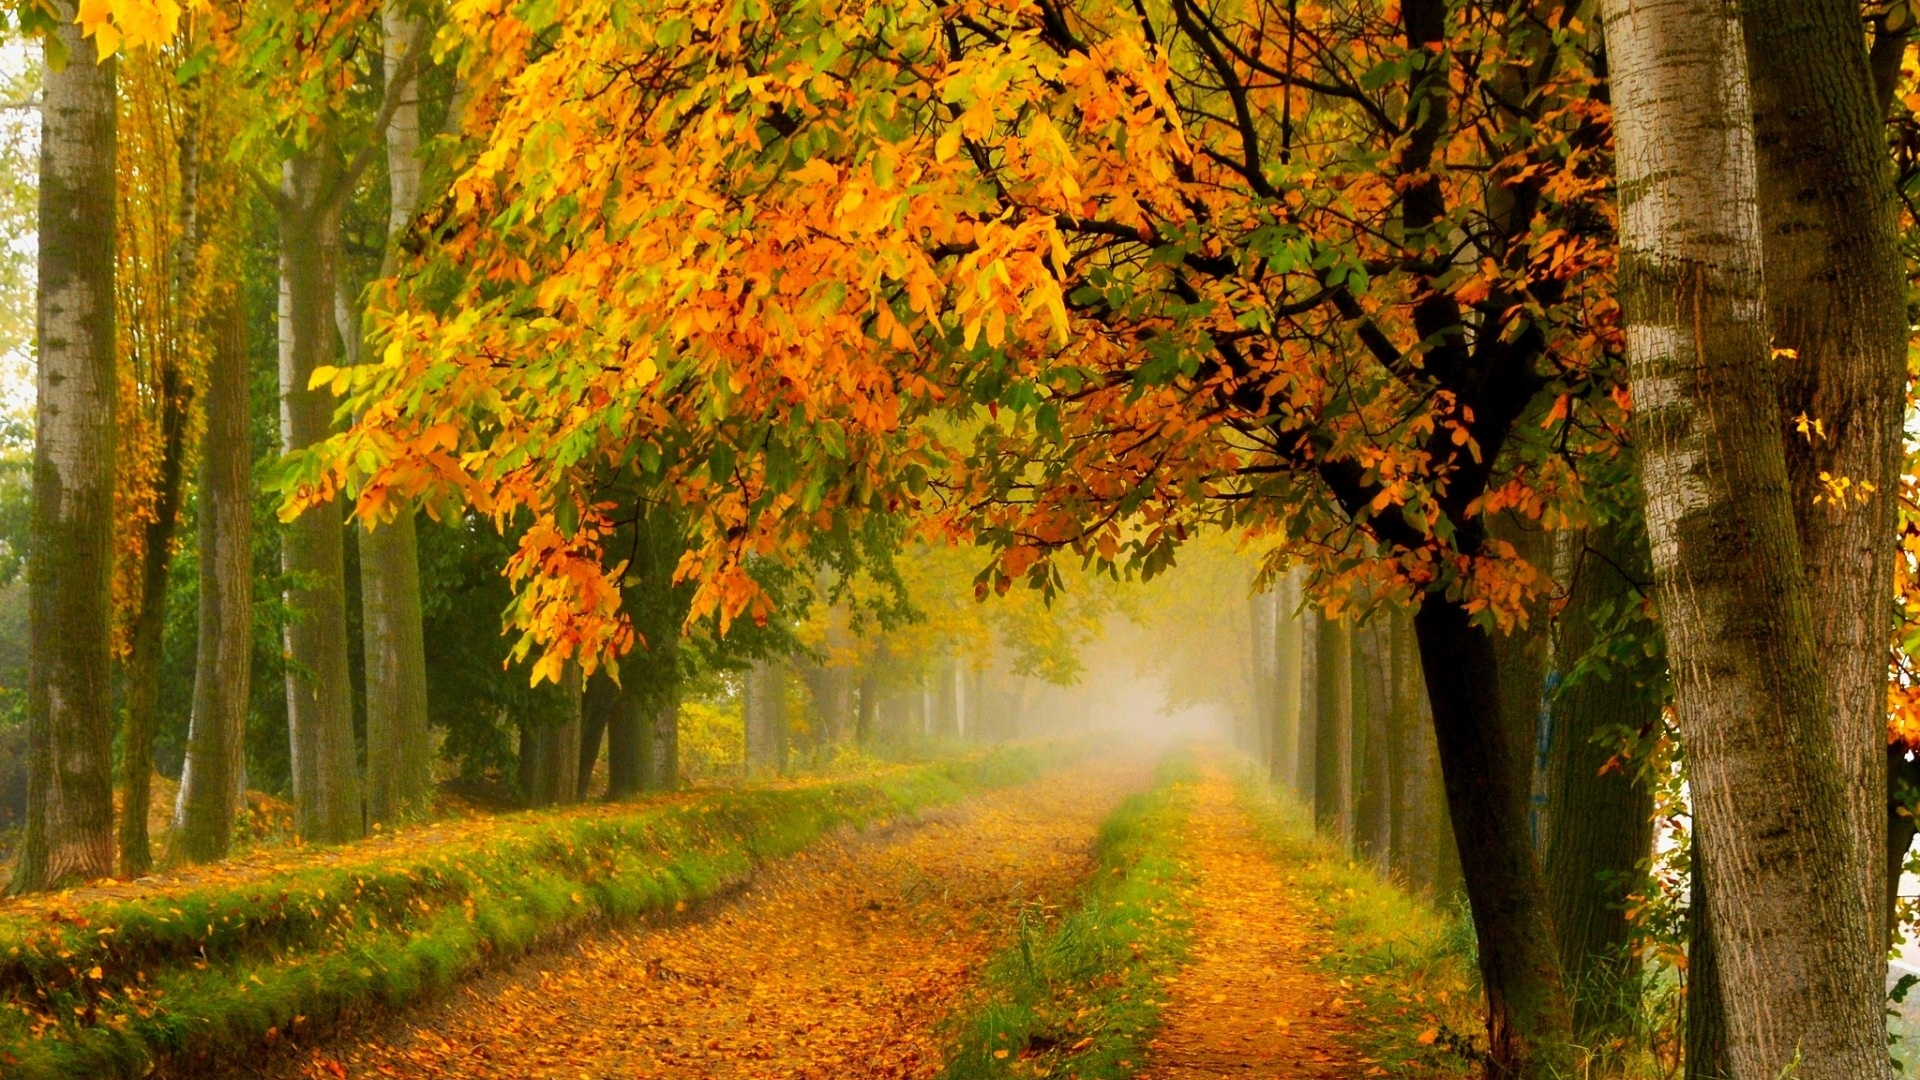 Colorful-Autumn-Fall-Forest-Park-1920-x-1080-Need-iPhone-S-Plus-Backgro-wallpaper-wp3404029